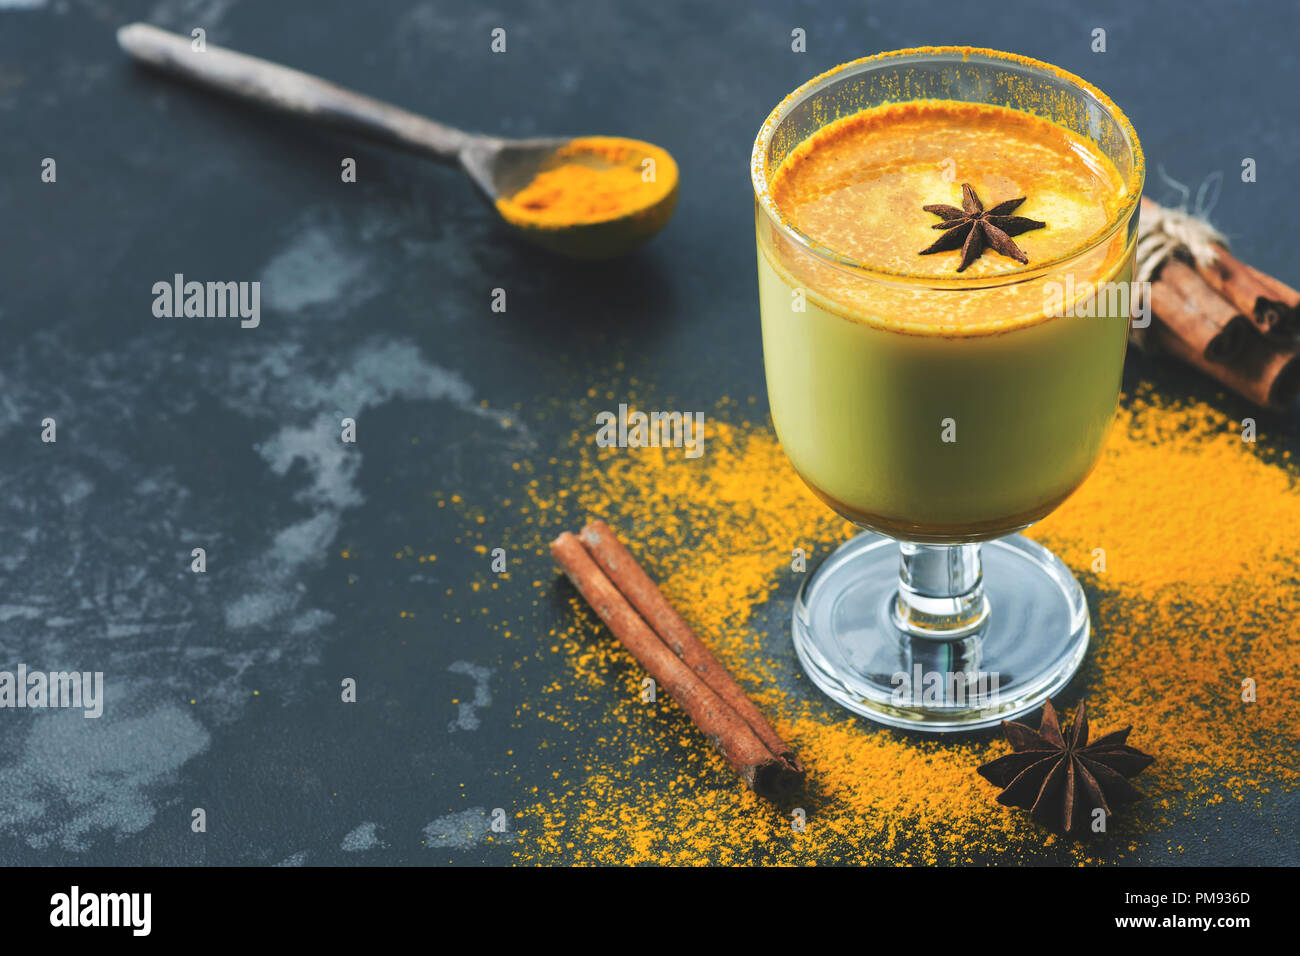 Golden milk, beverage with turmeric and spices in a glass. Drink an antioxidant against the common cold. Copy space, selective focus - Stock Image